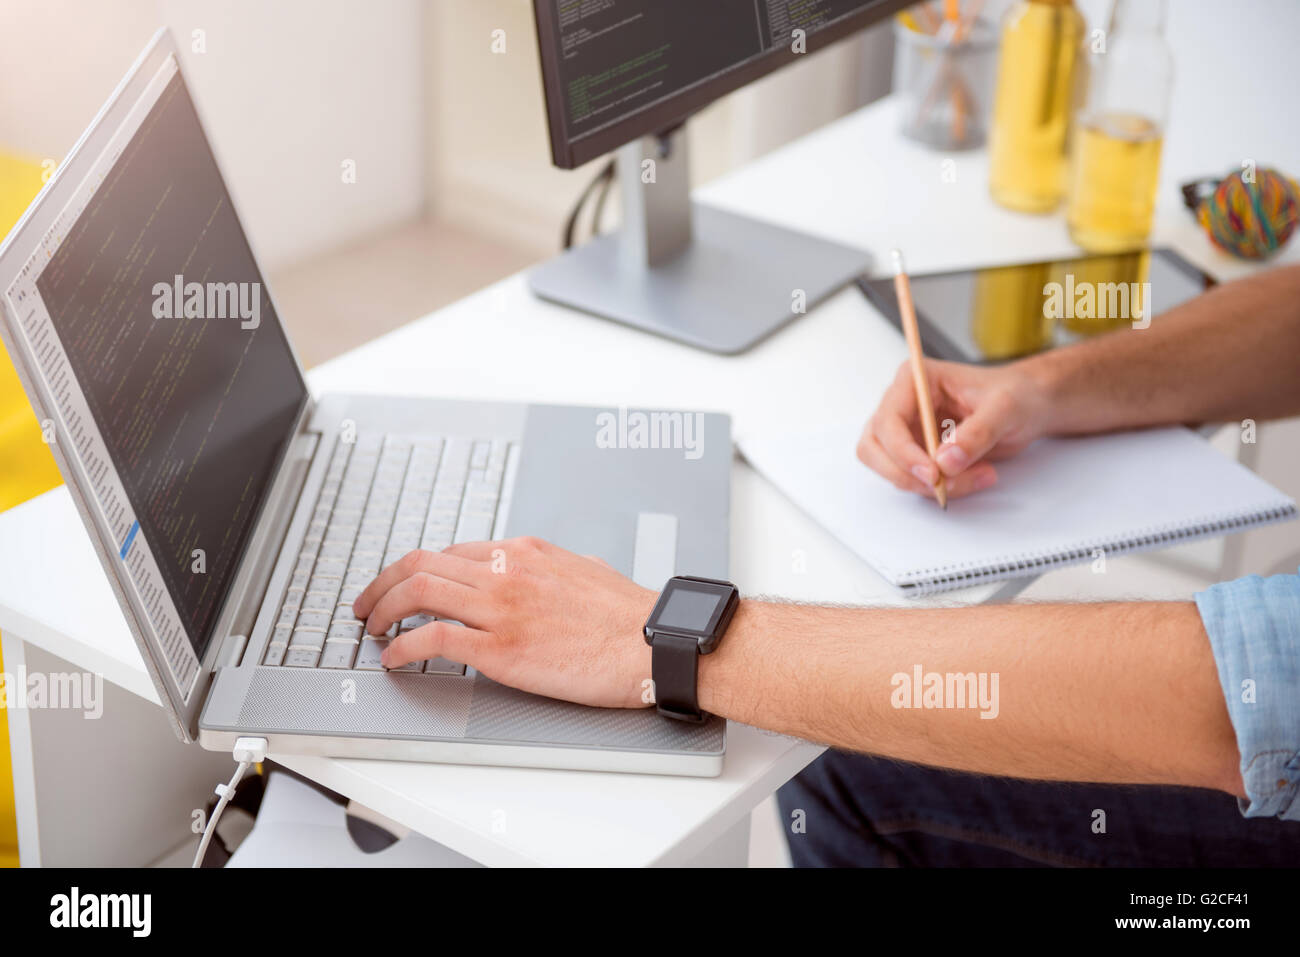 Hands of man tapping on the laptop - Stock Image